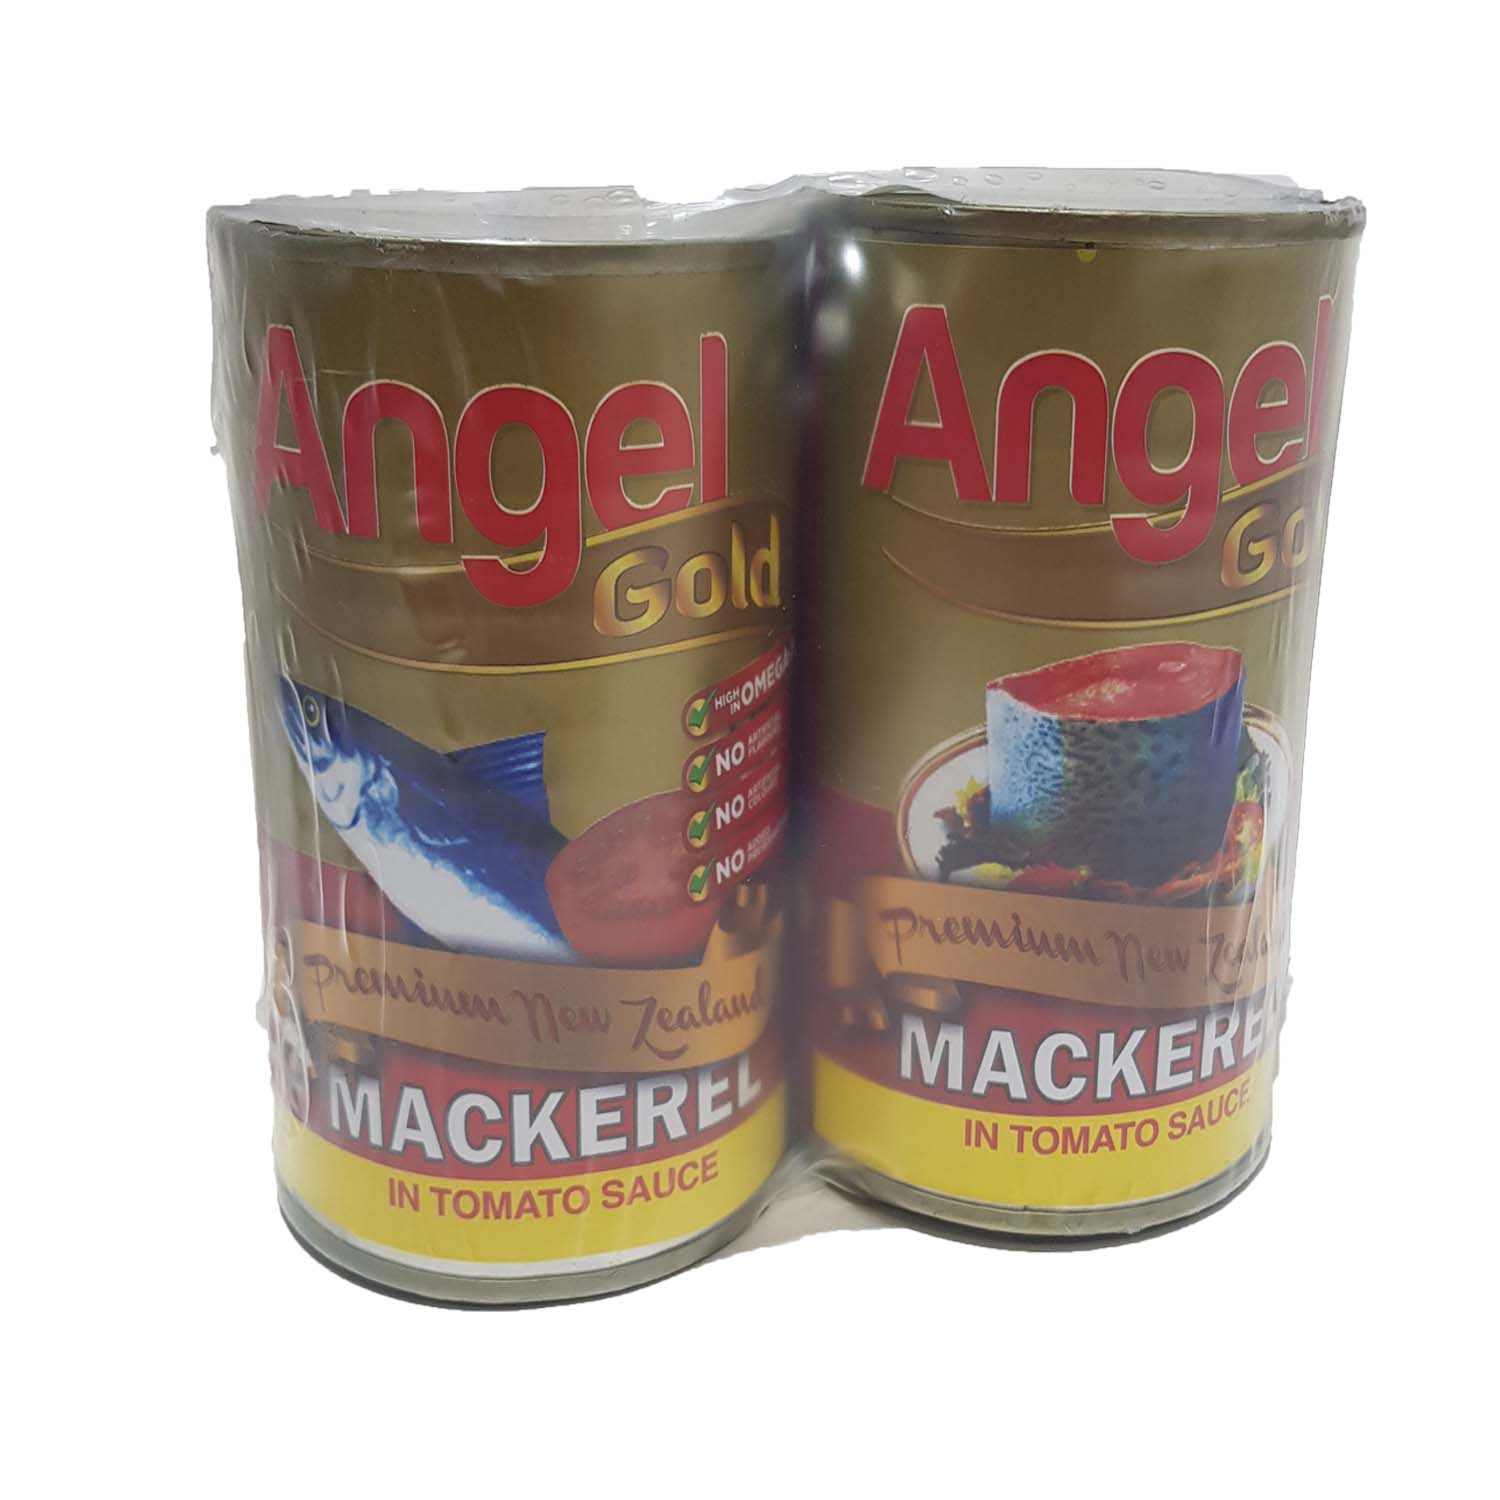 Angel Gold Mackerel - Tomato Sauce 2 x 425g